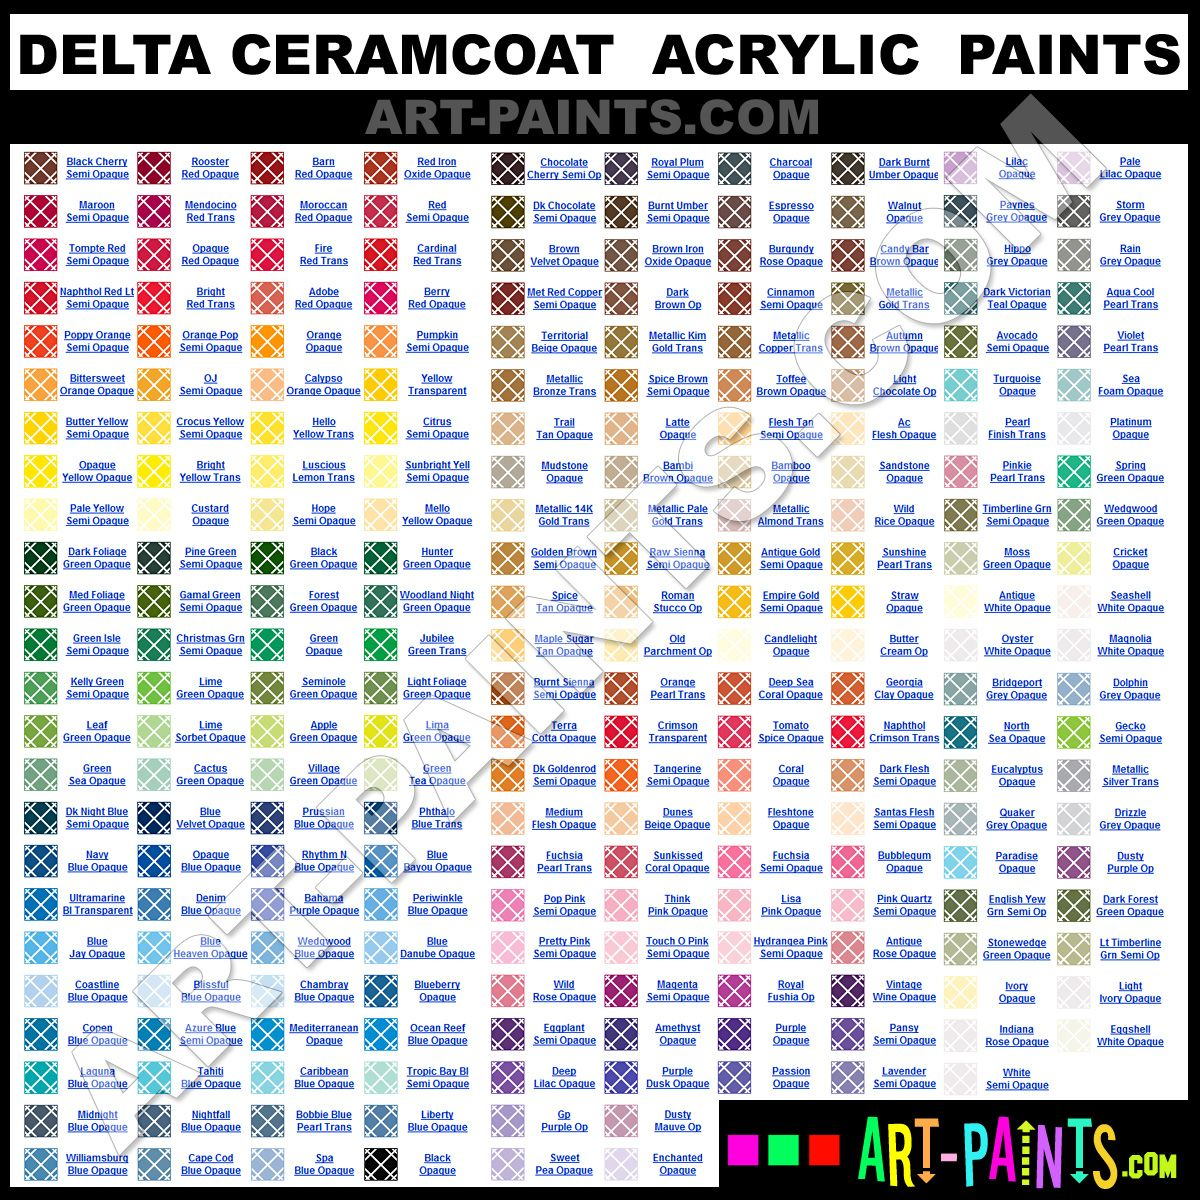 Folk art acrylic paint color chart - Delta Ceramcoat Acrylic Paints Paint Color Chartcolor